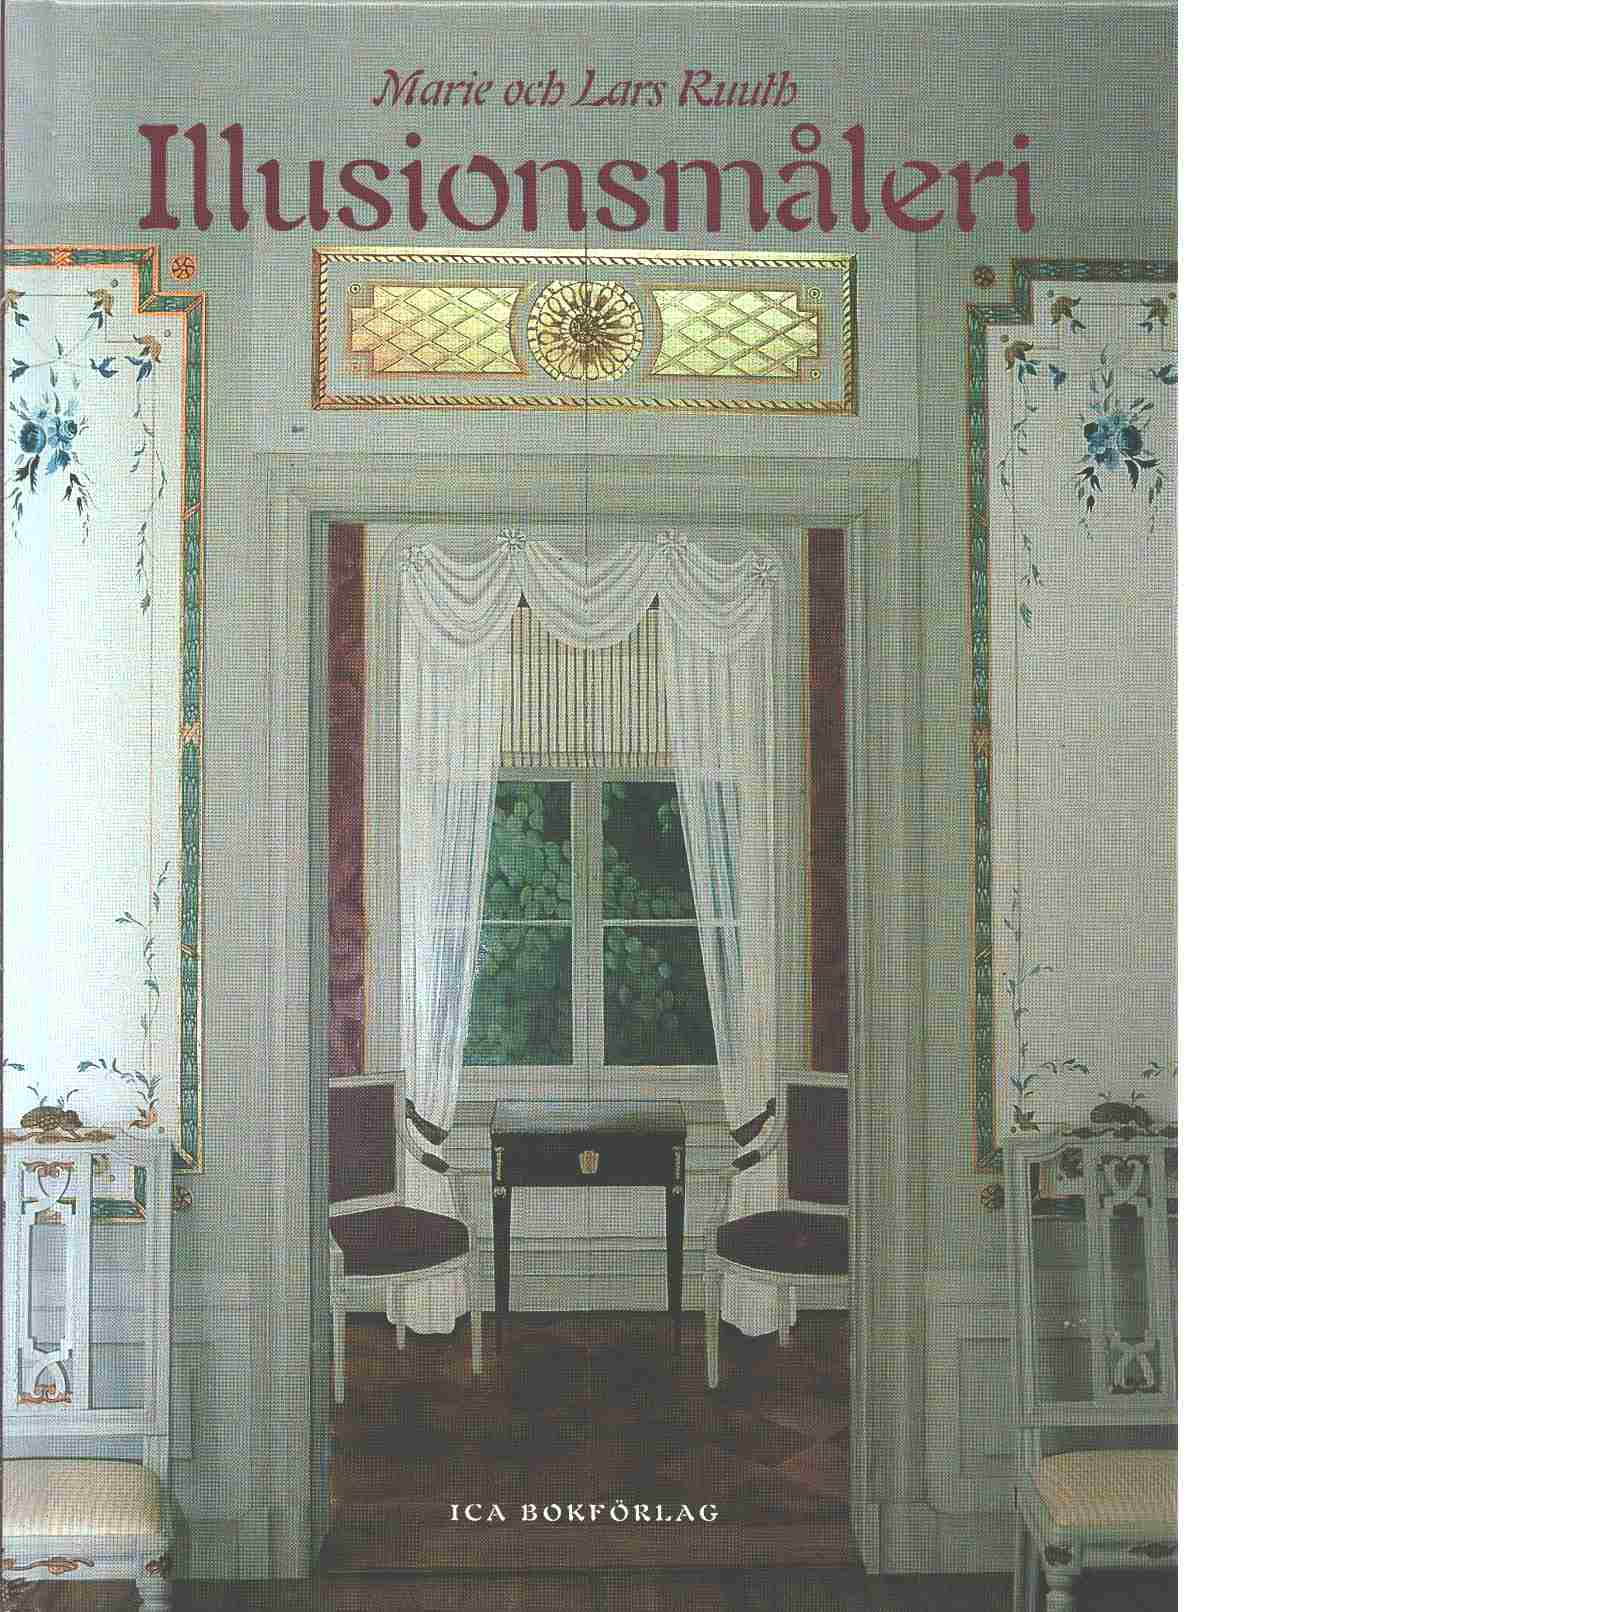 Illusionsmåleri - Ruuth, Marie och Ruuth, Lars